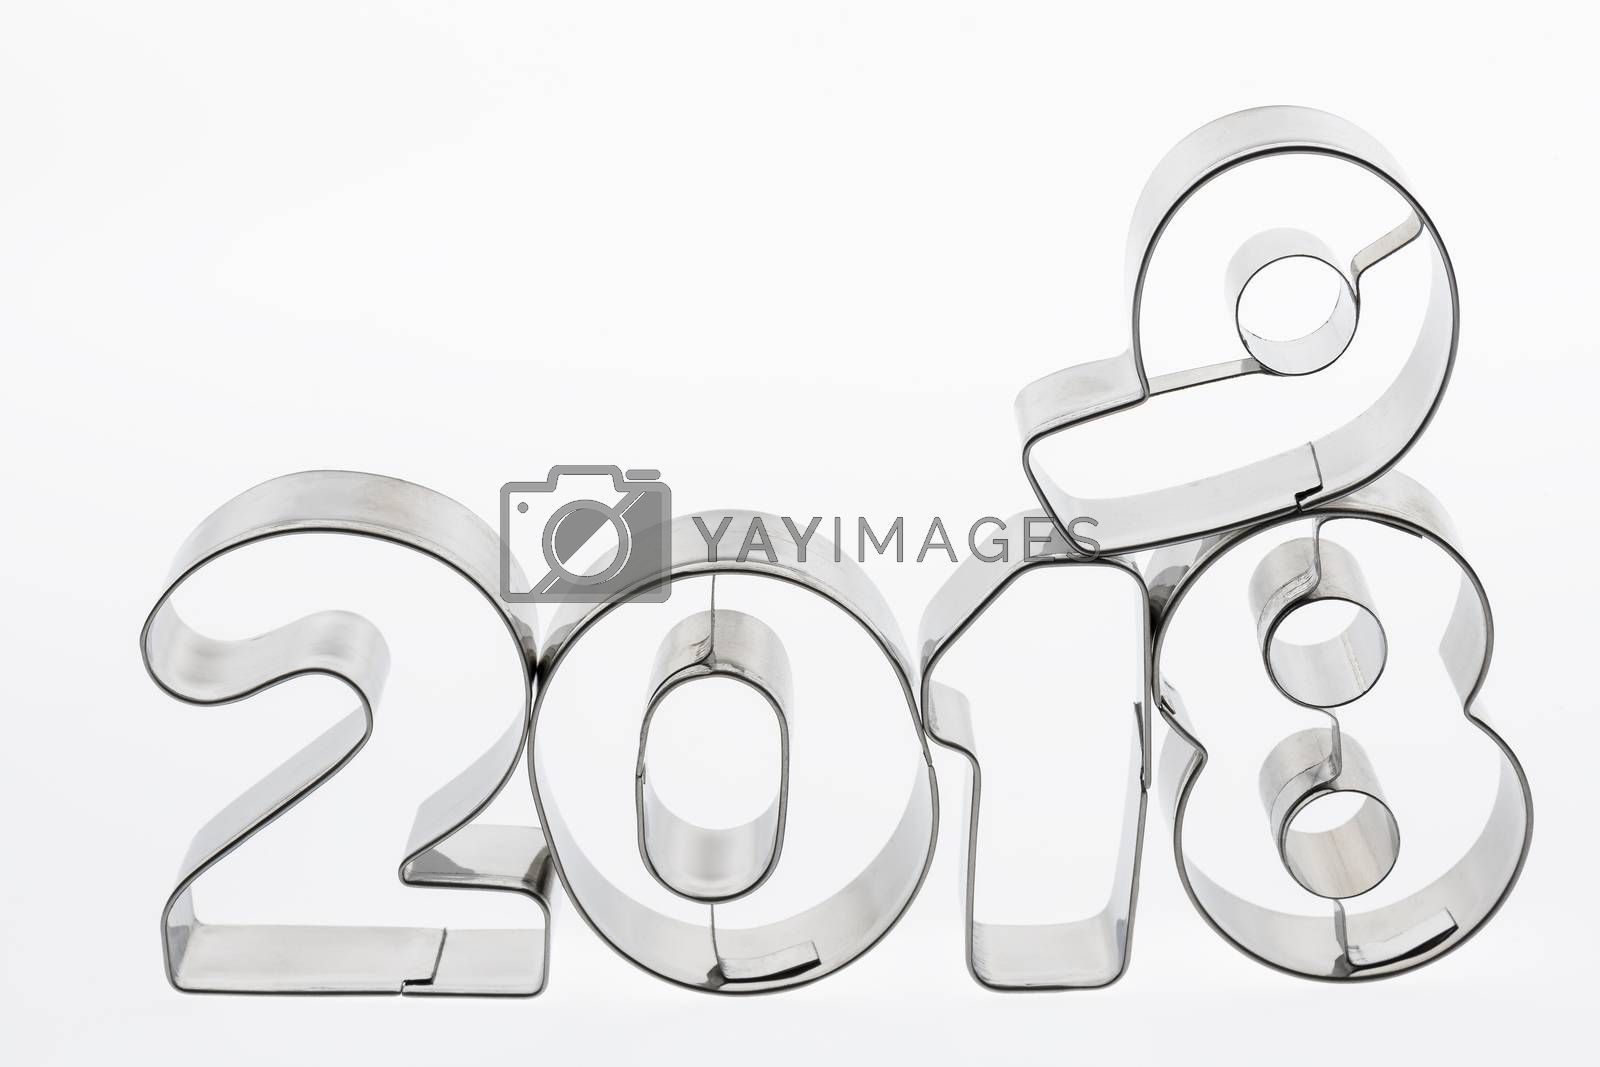 Text two thousand eighteen and nineteen in metal put figures on a white background as a visualization of the coming new year